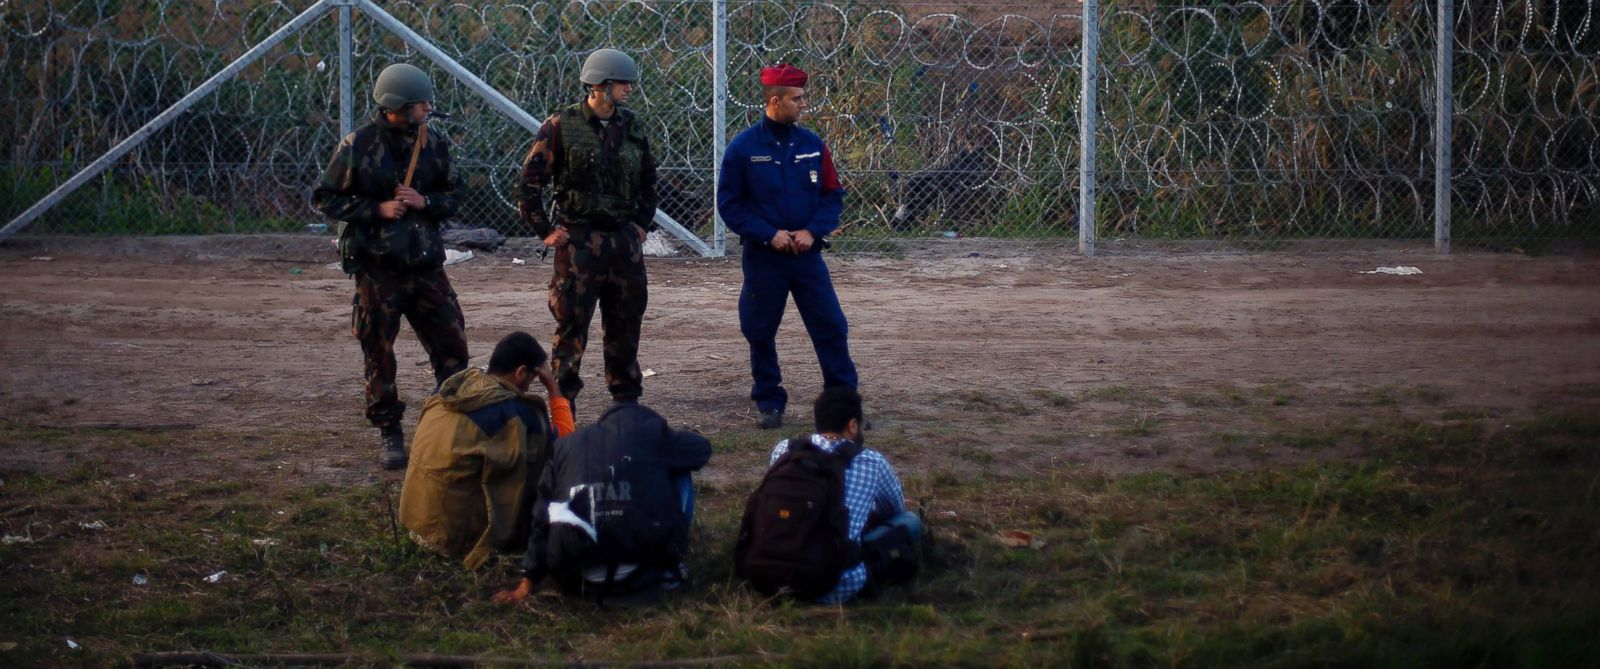 PHOTO: Migrants sit on the ground arrested by Hungarian police officers and soldiers after they tried to cross the border between Serbia and Hungary in Roszke, Hungary, Sept. 15, 2015.